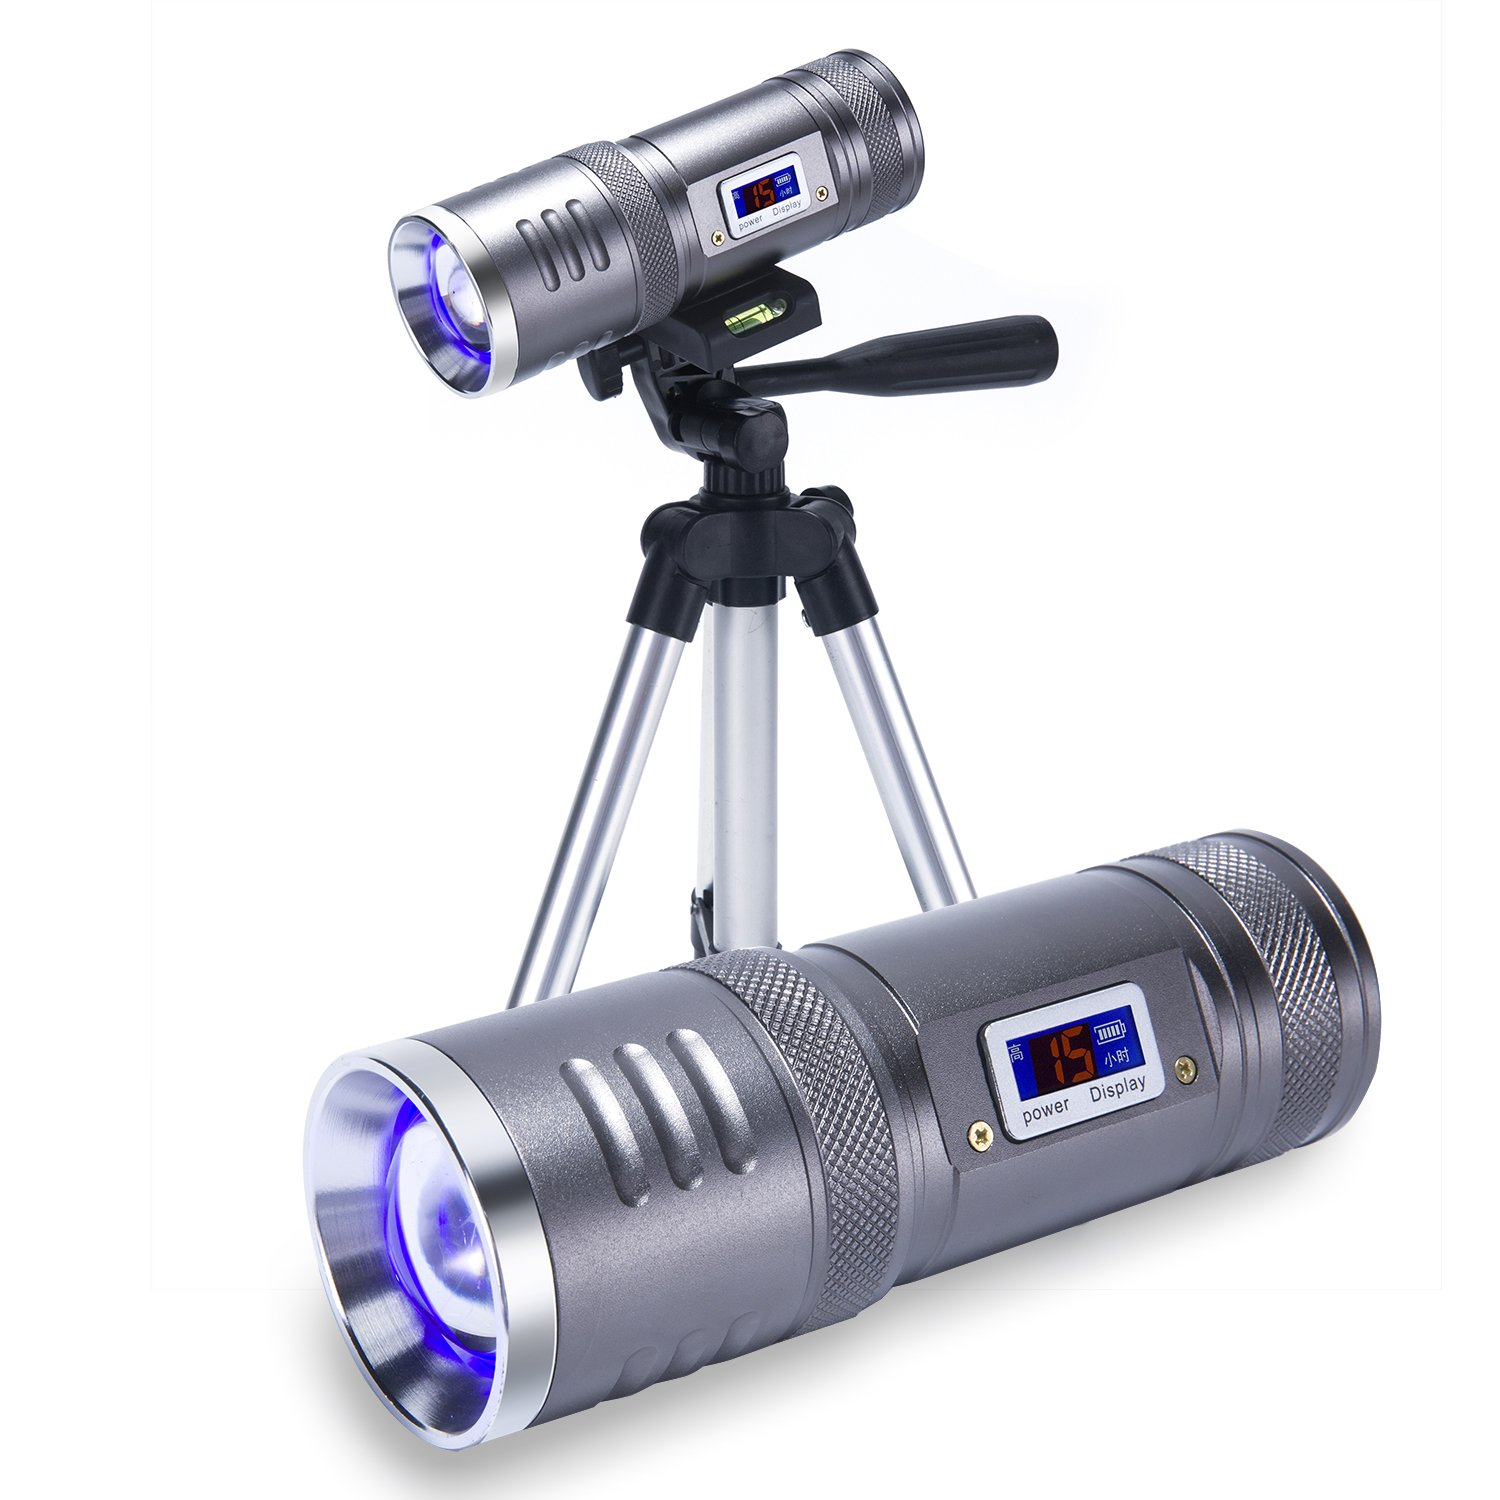 AustraLoid LED Rechargeable Spotlight with 4 Light Model -Can be Used 60 Hours with Fully Charged,and Easy to Carry